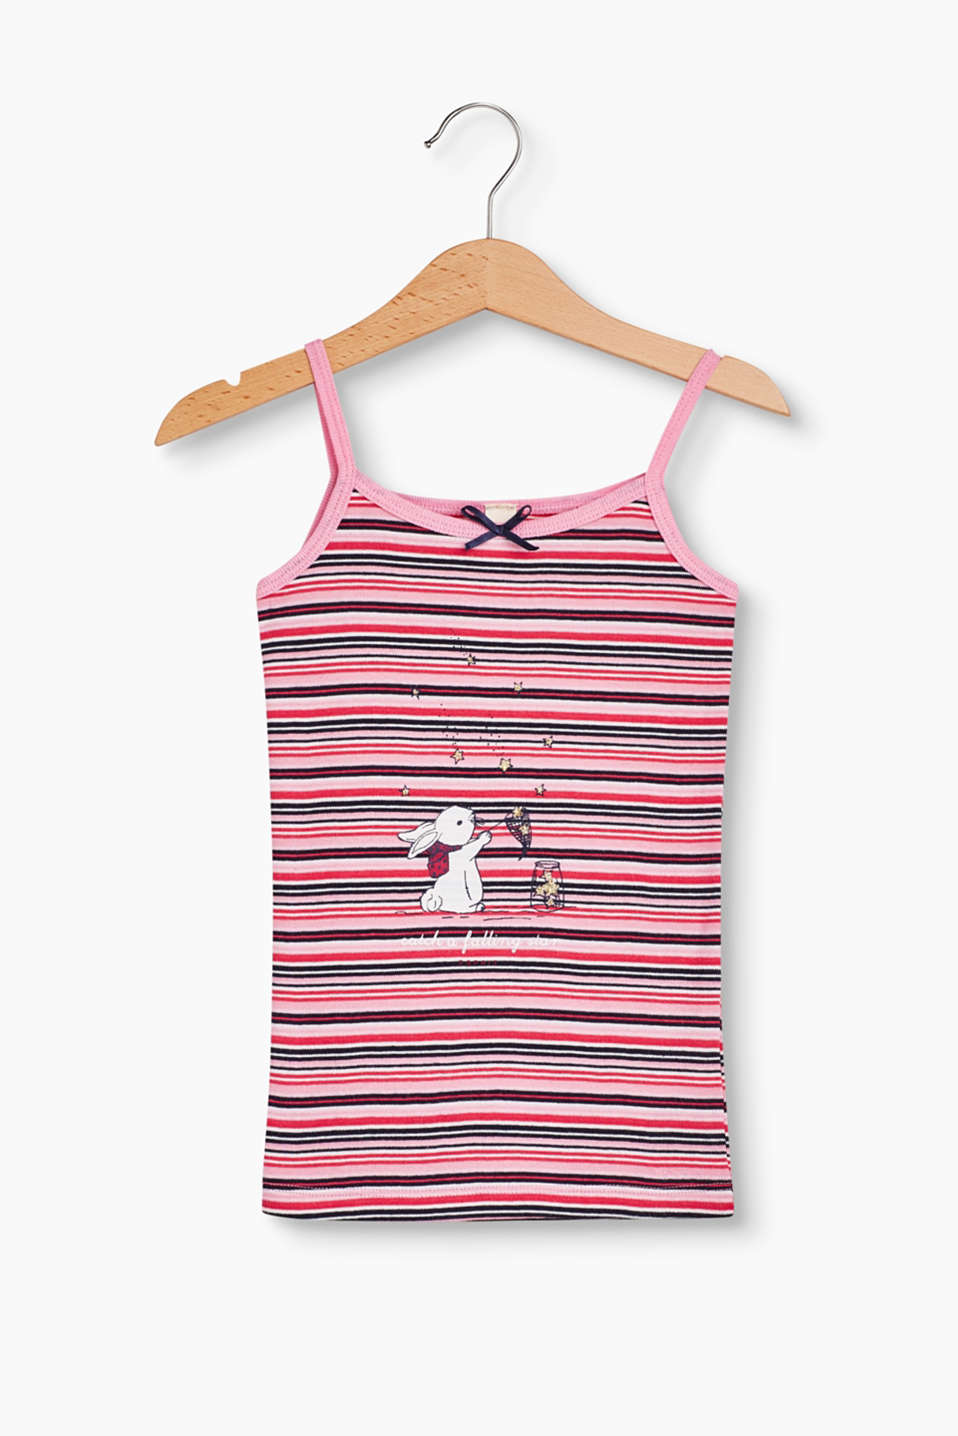 This striped cotton top with a glitter print unites comfort with a cute look